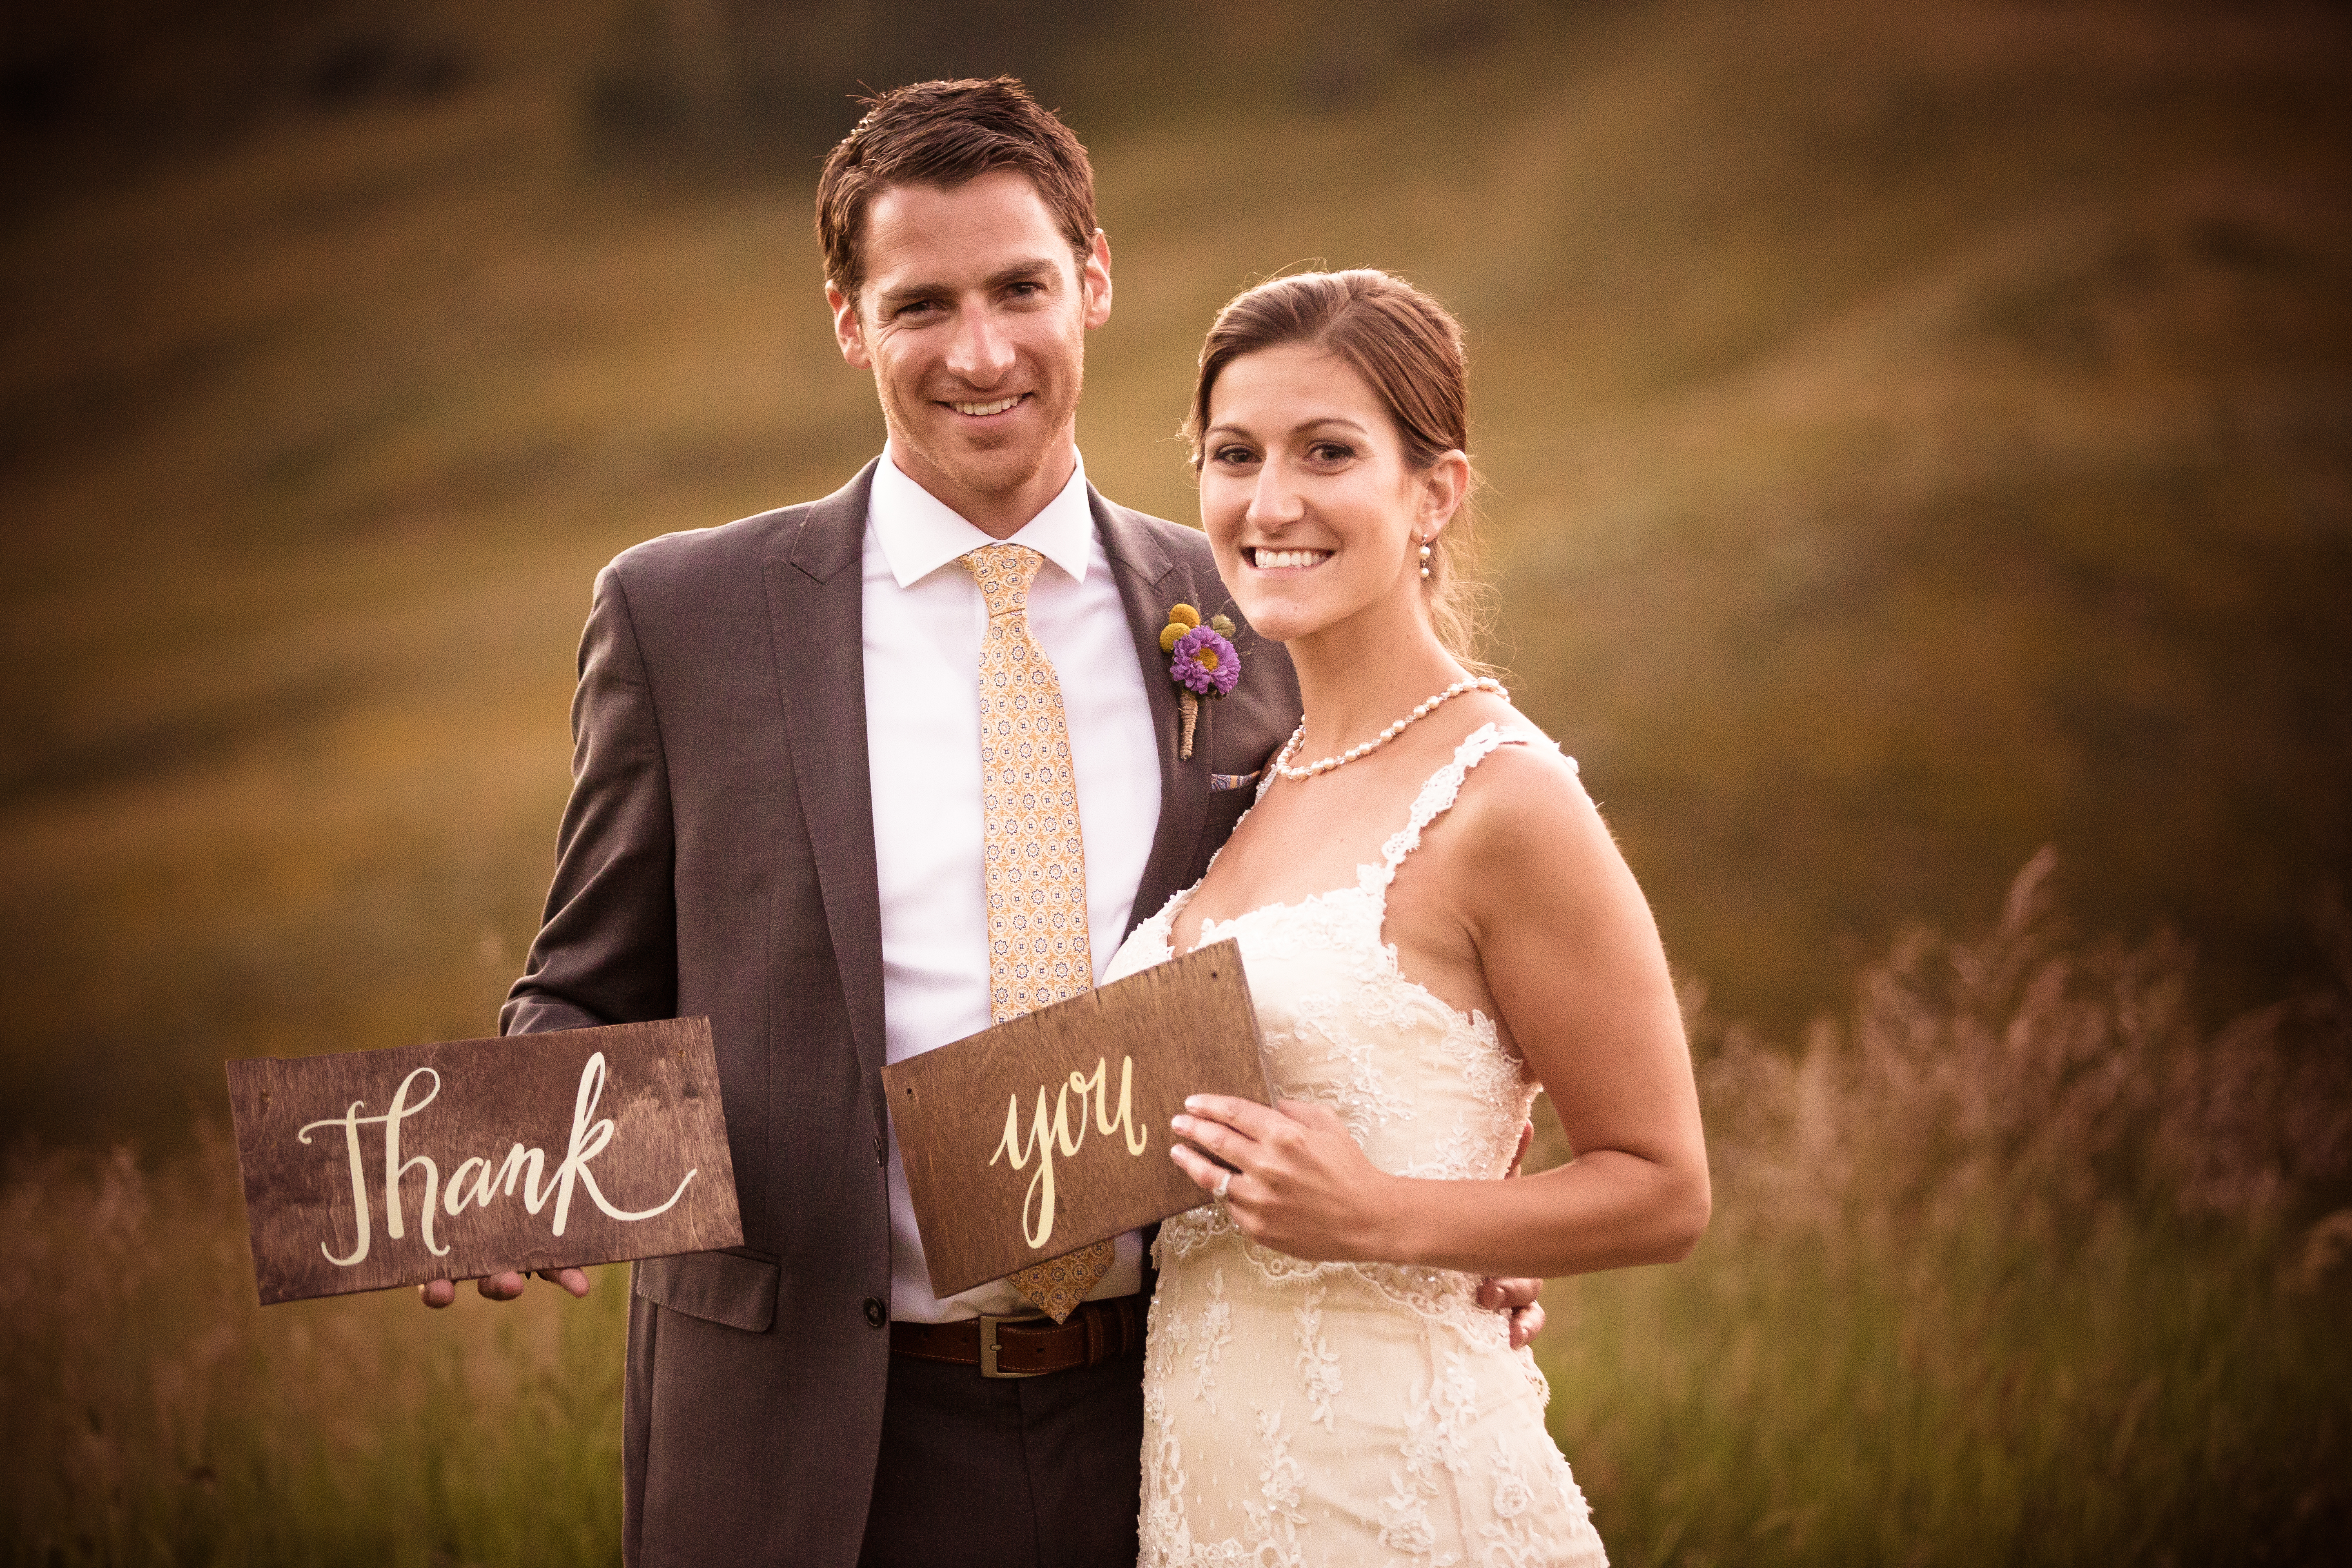 Guide to tipping your wedding vendors lucky penny event planning guide to tipping your wedding vendors junglespirit Image collections